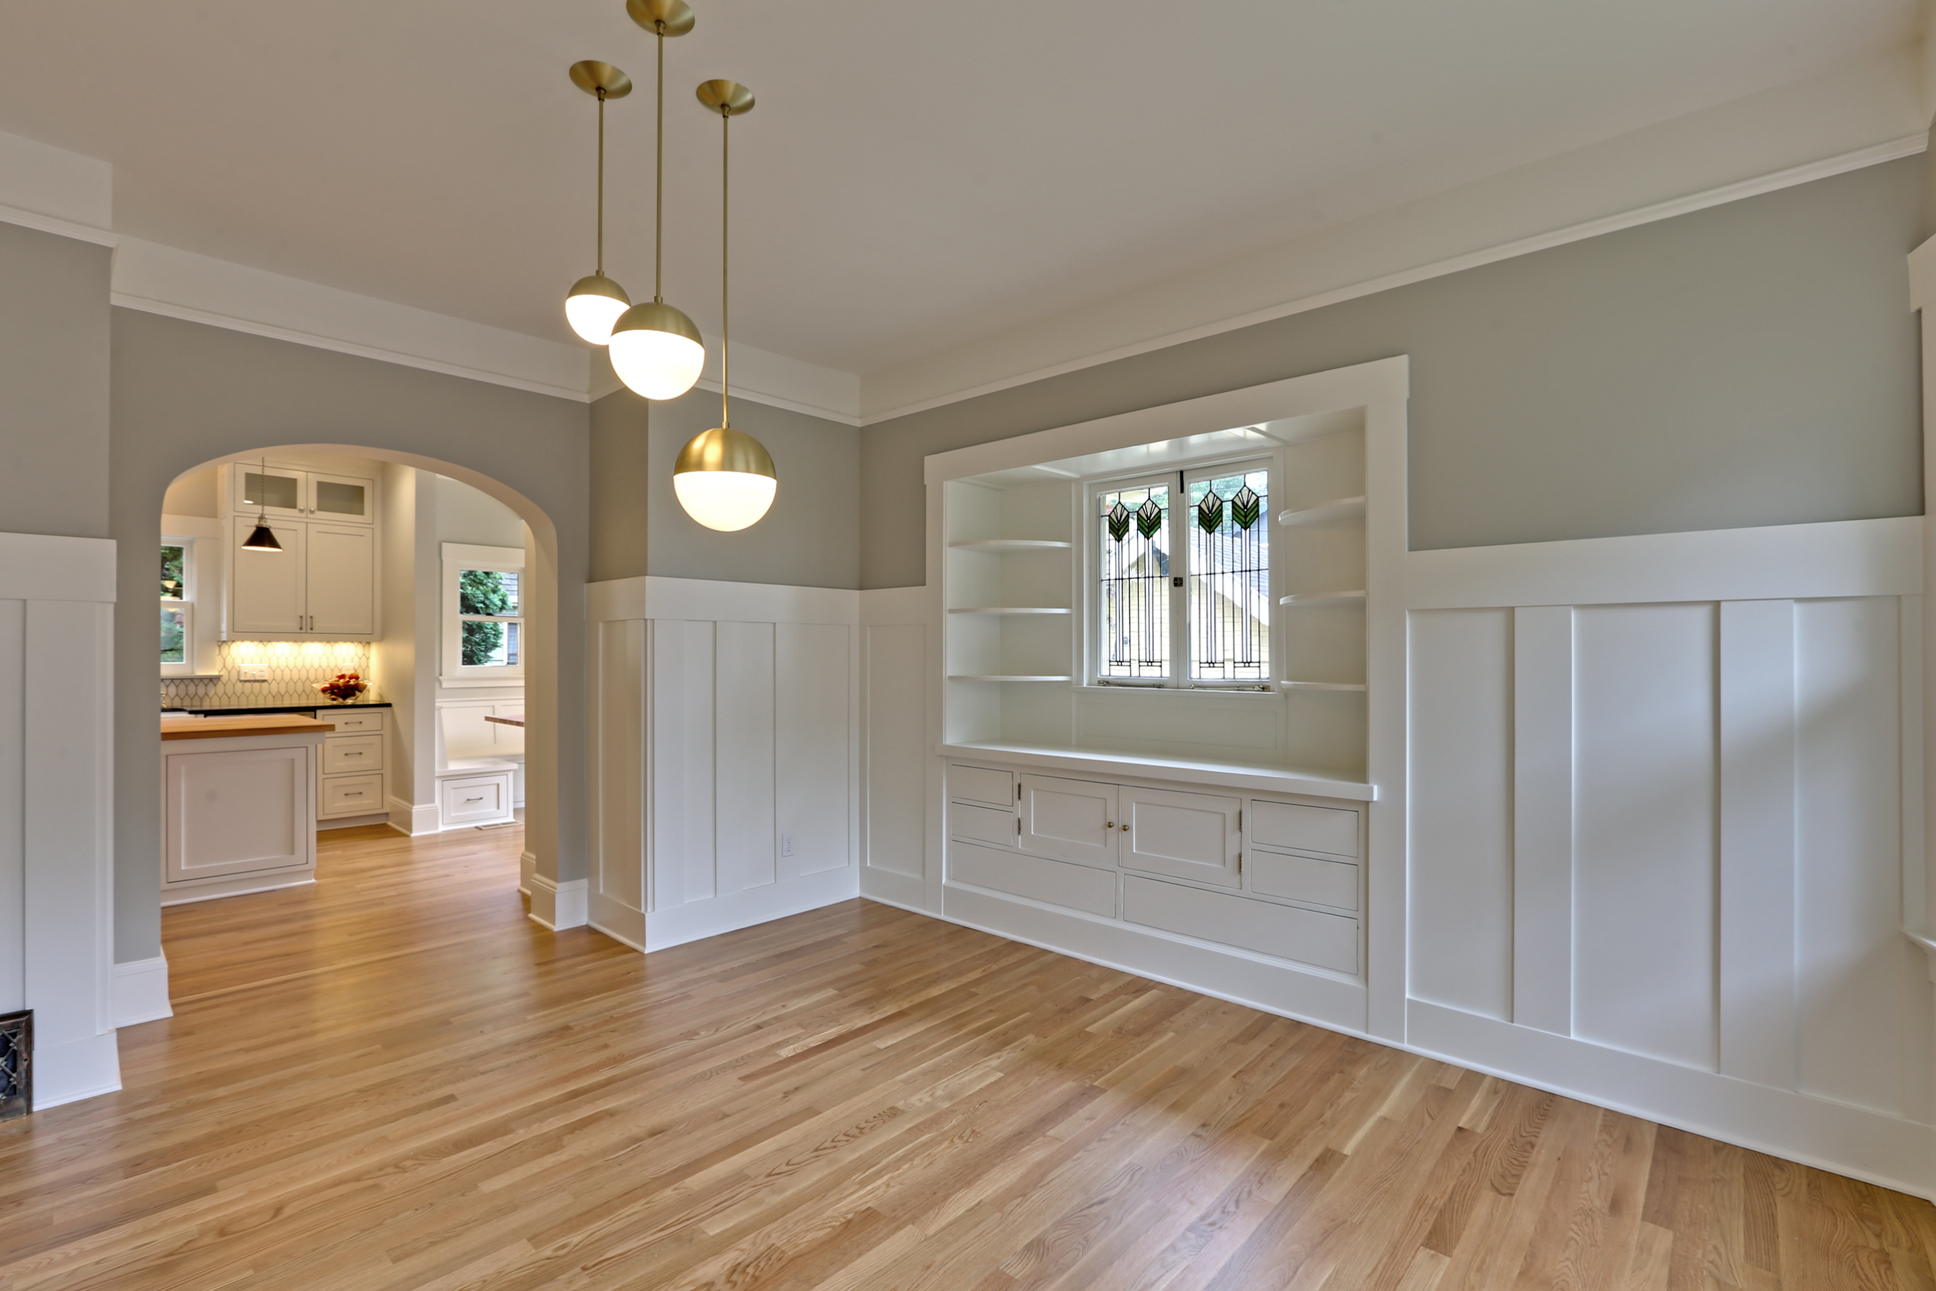 We redesigned the passageway from the dining room into the kitchen for better flow and to match the arches found elsewhere in the home. Fun light fixtures from Rejuvenation compliment the revitalized original cabinets and wainscoting; blending old and new really works on projects like this.